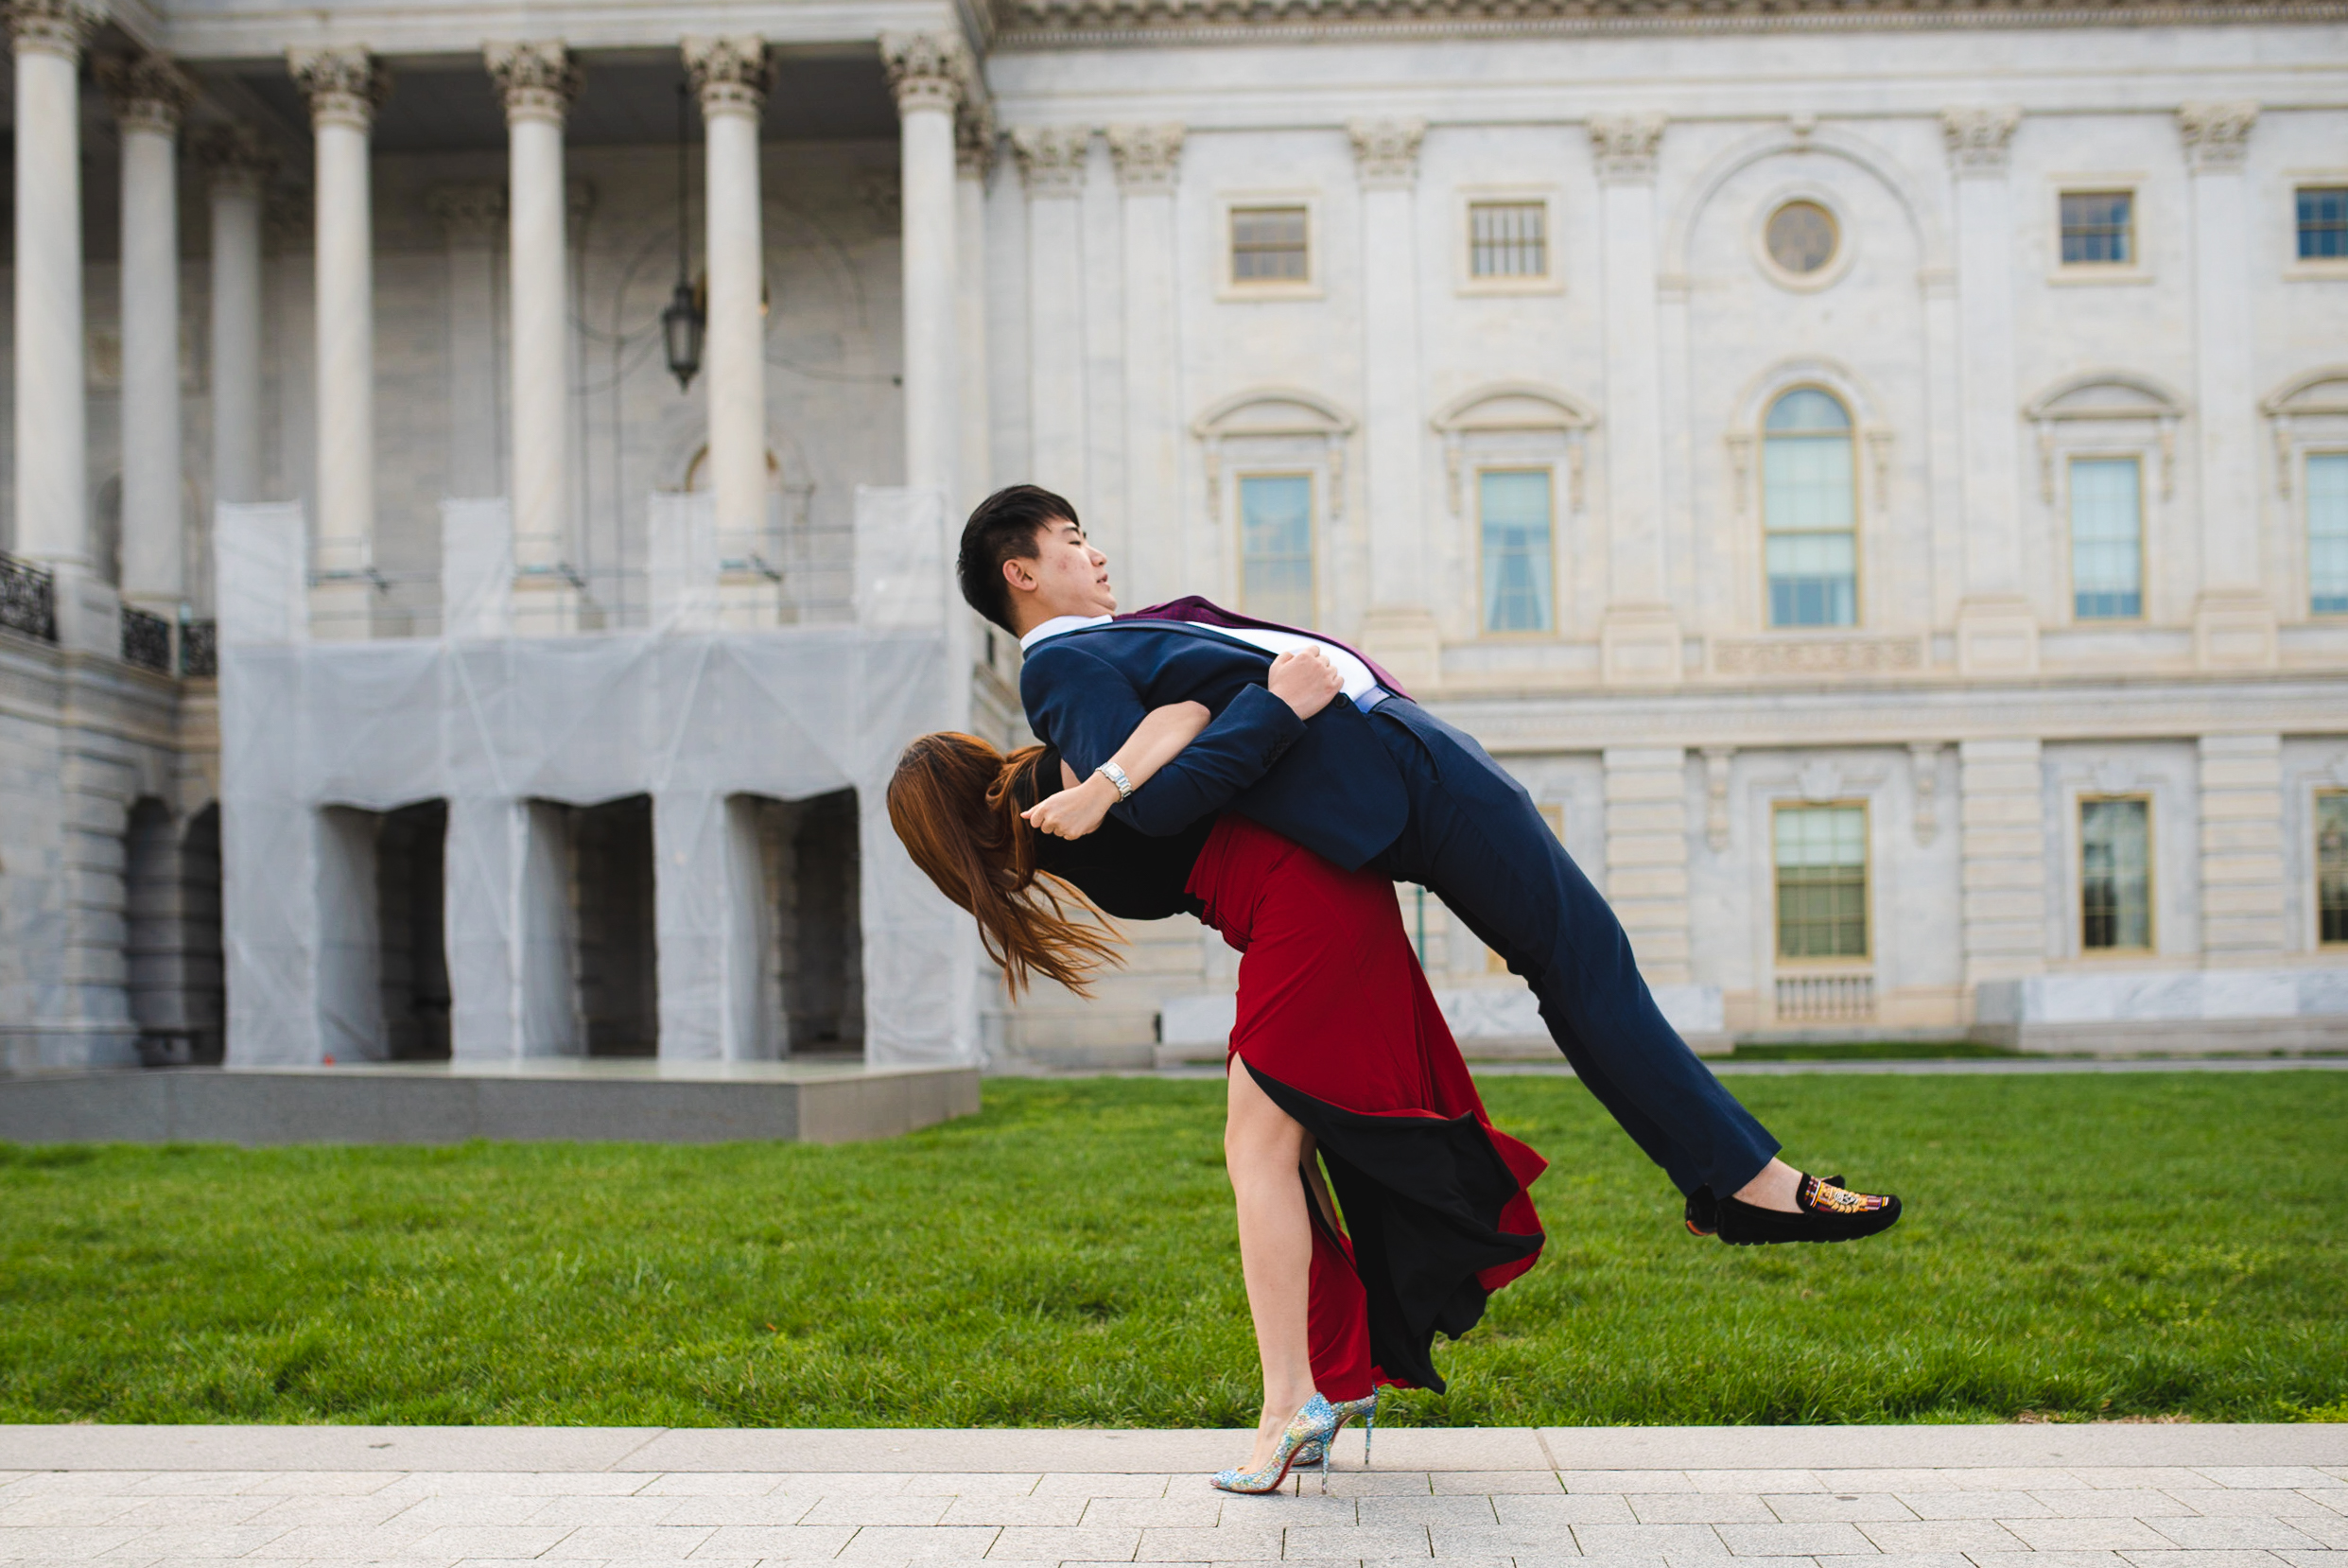 United States Capitol engagement photographer